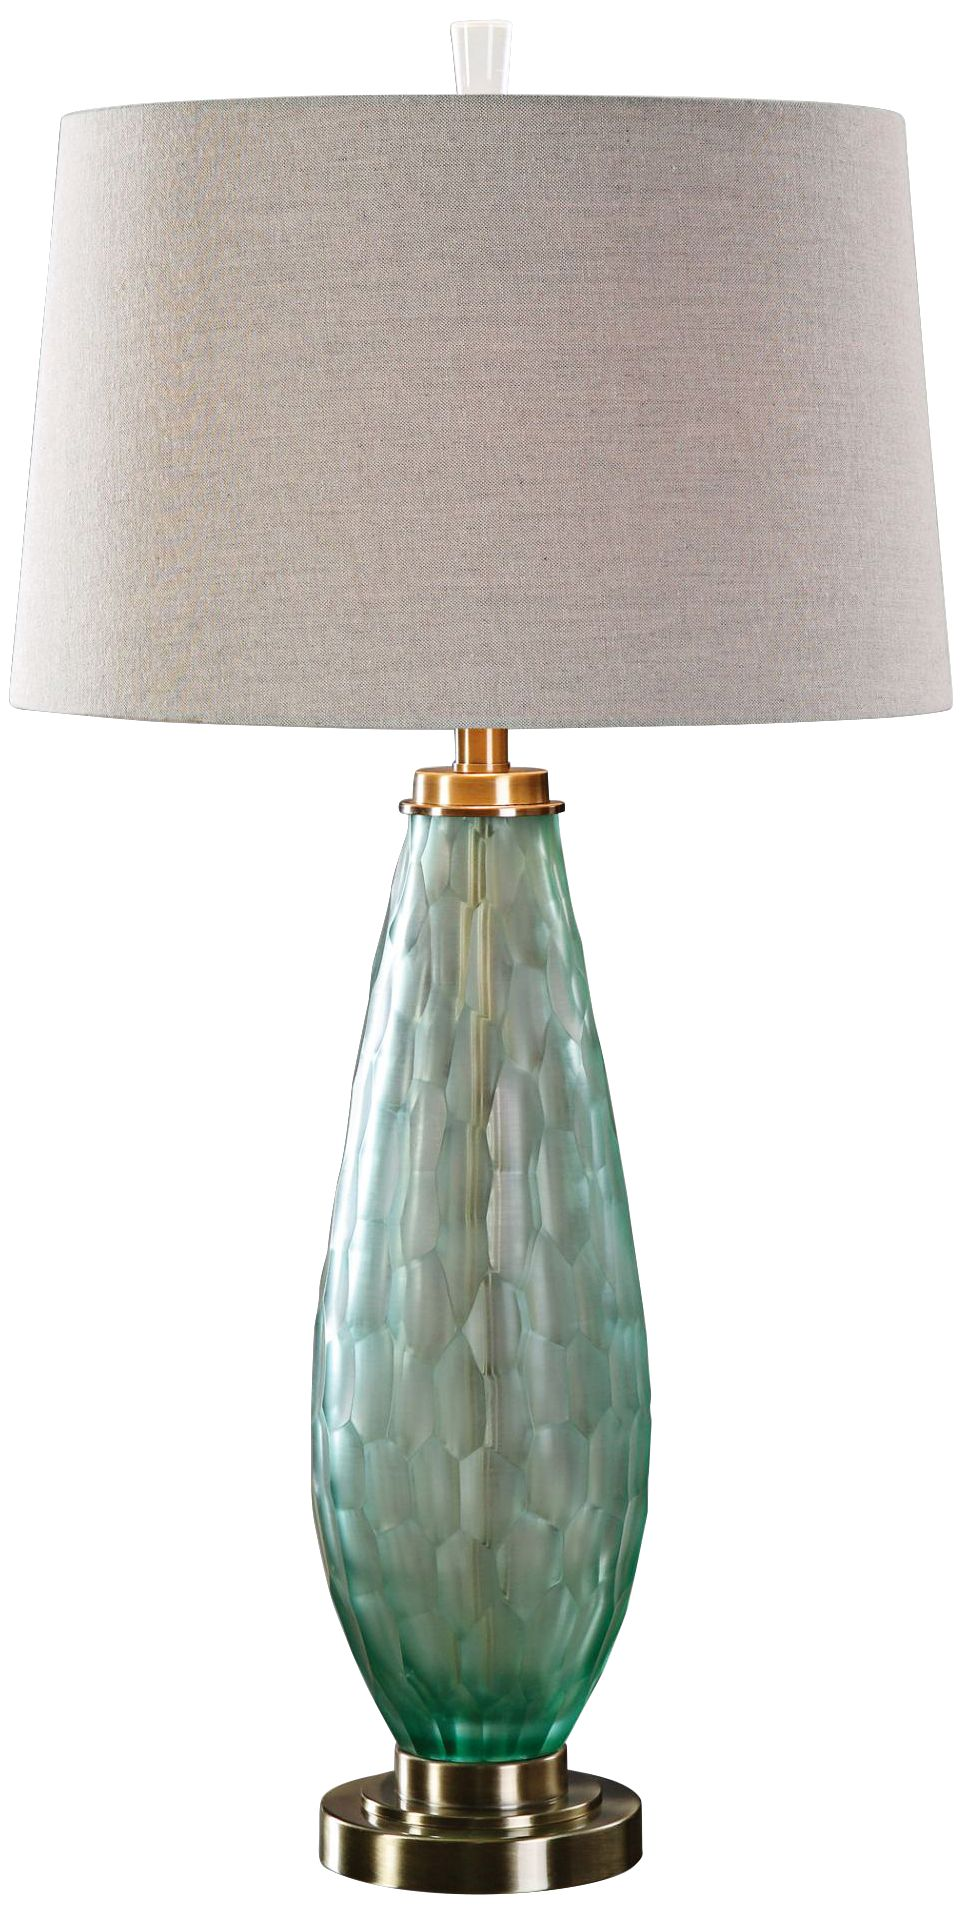 uttermost lenado frosted sea green glass table lamp - Uttermost Lamps